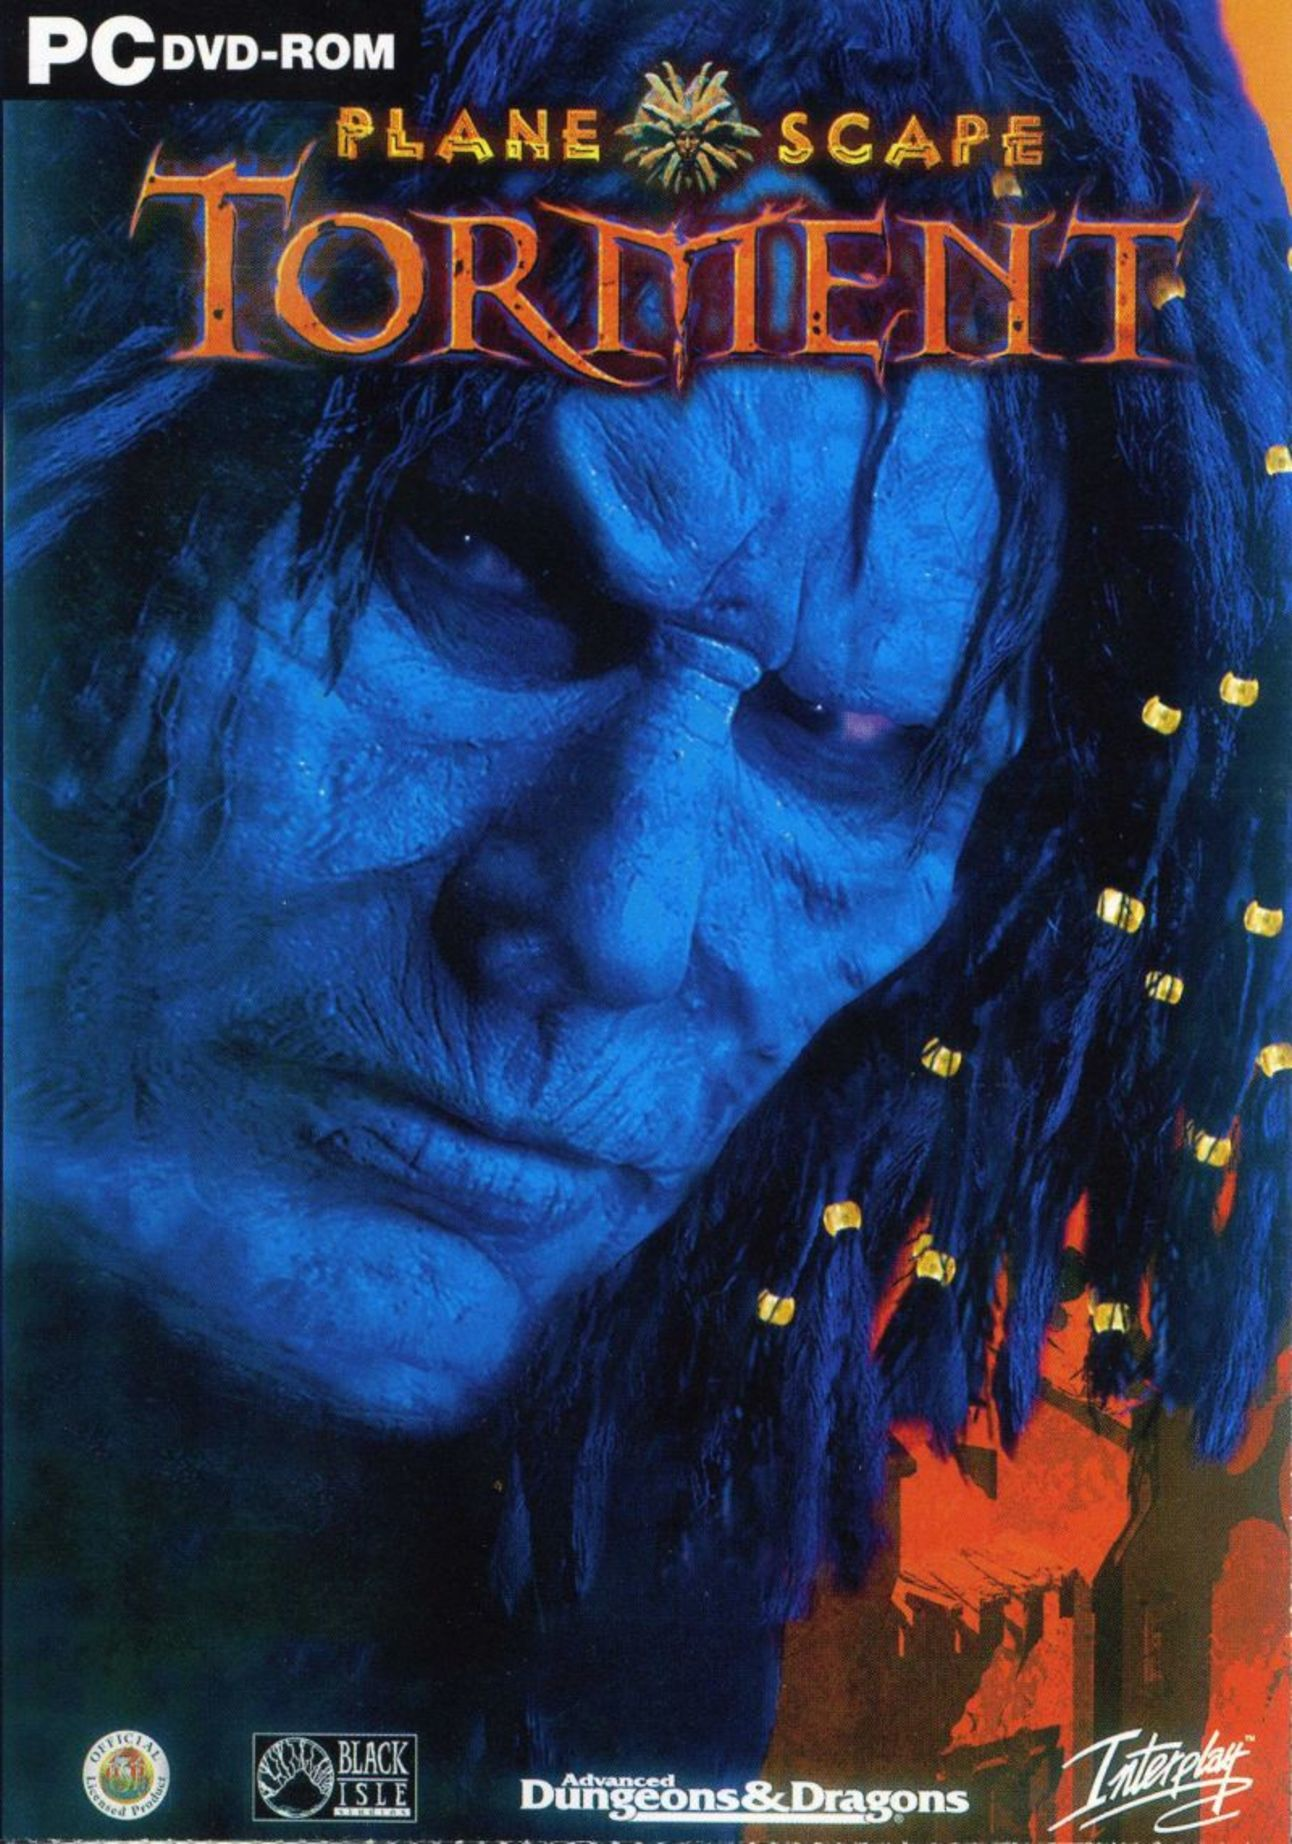 86679-planescape-torment-windows-front-cover.jpg